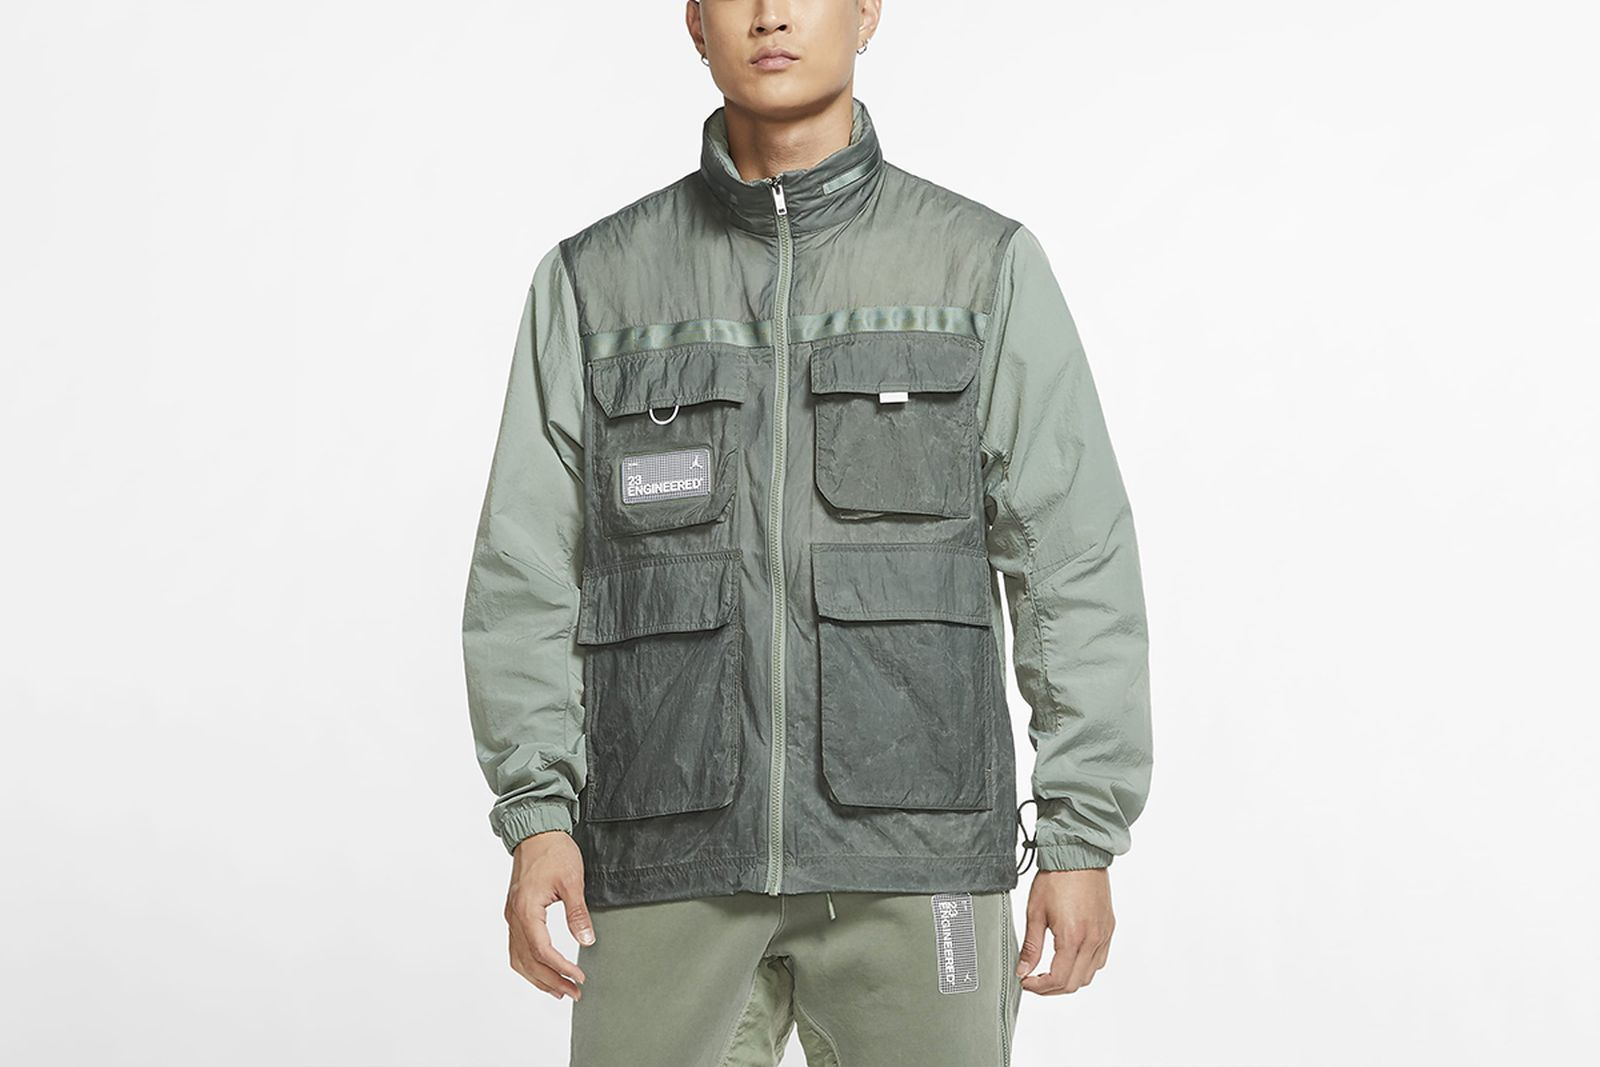 jordan-23-engineered-jacket-QfXDnQ